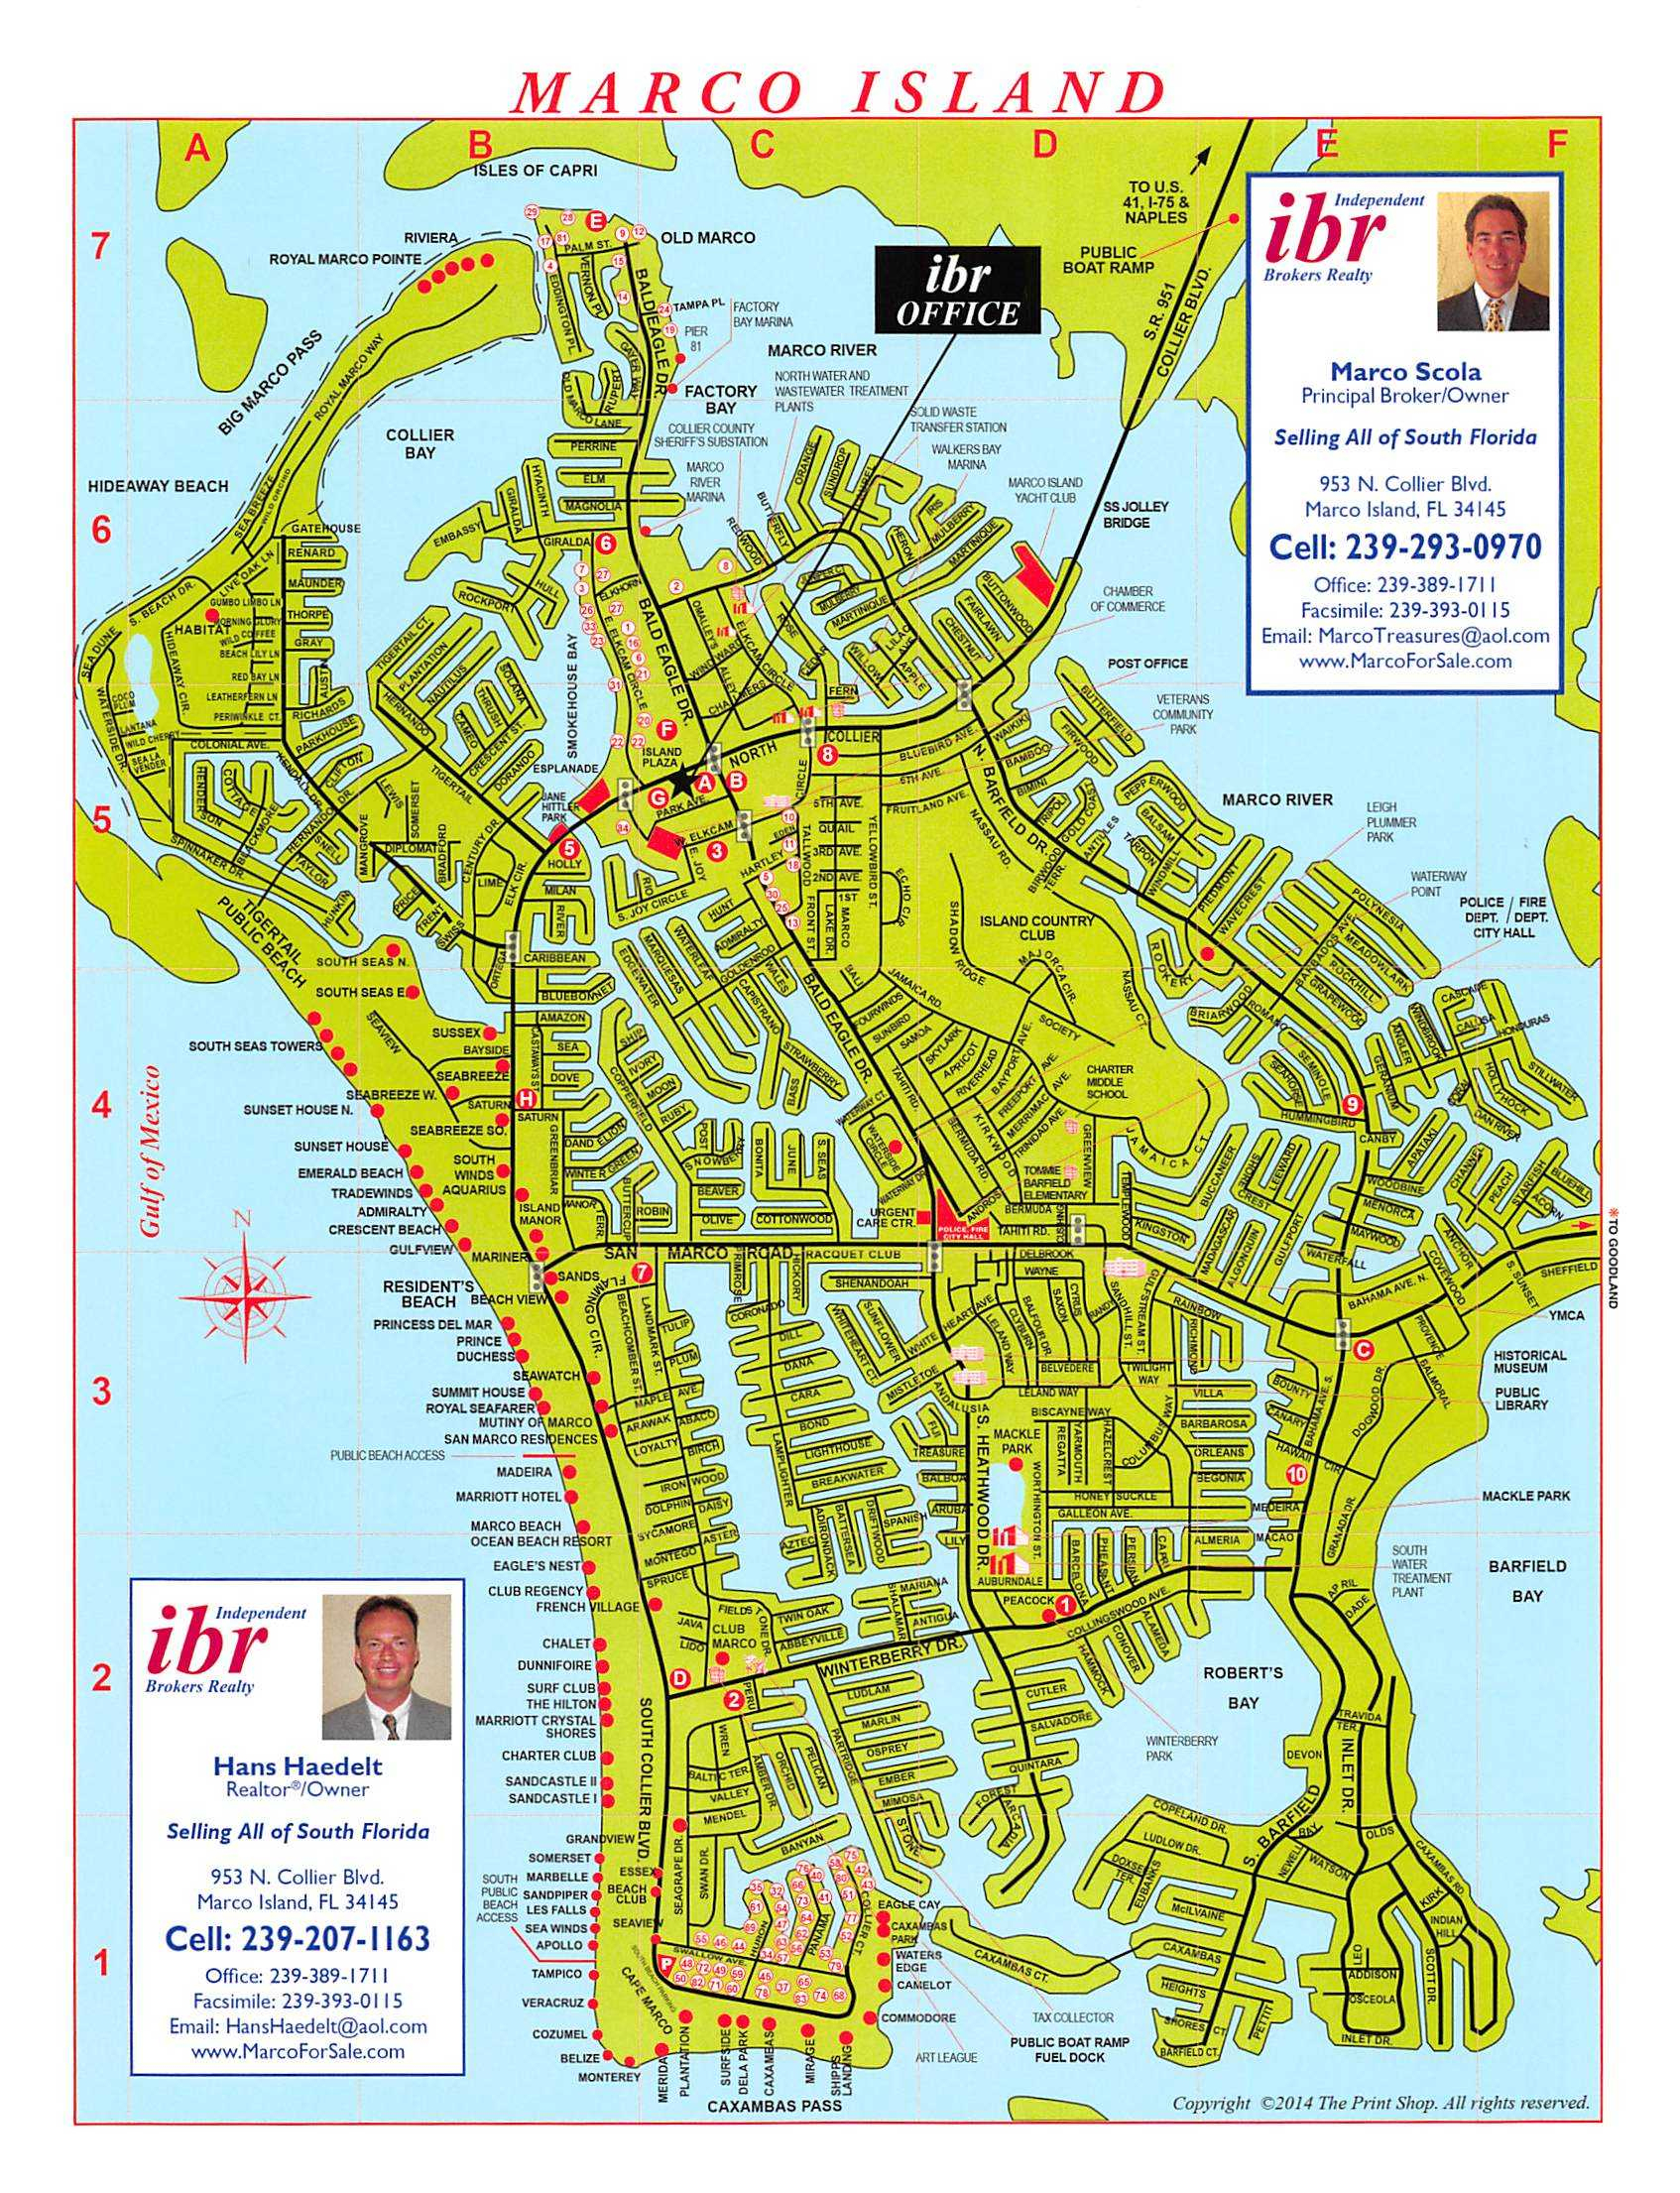 Marco Island Florida Map From Marcoforsale 10 - Ameliabd - Marco Island Florida Map